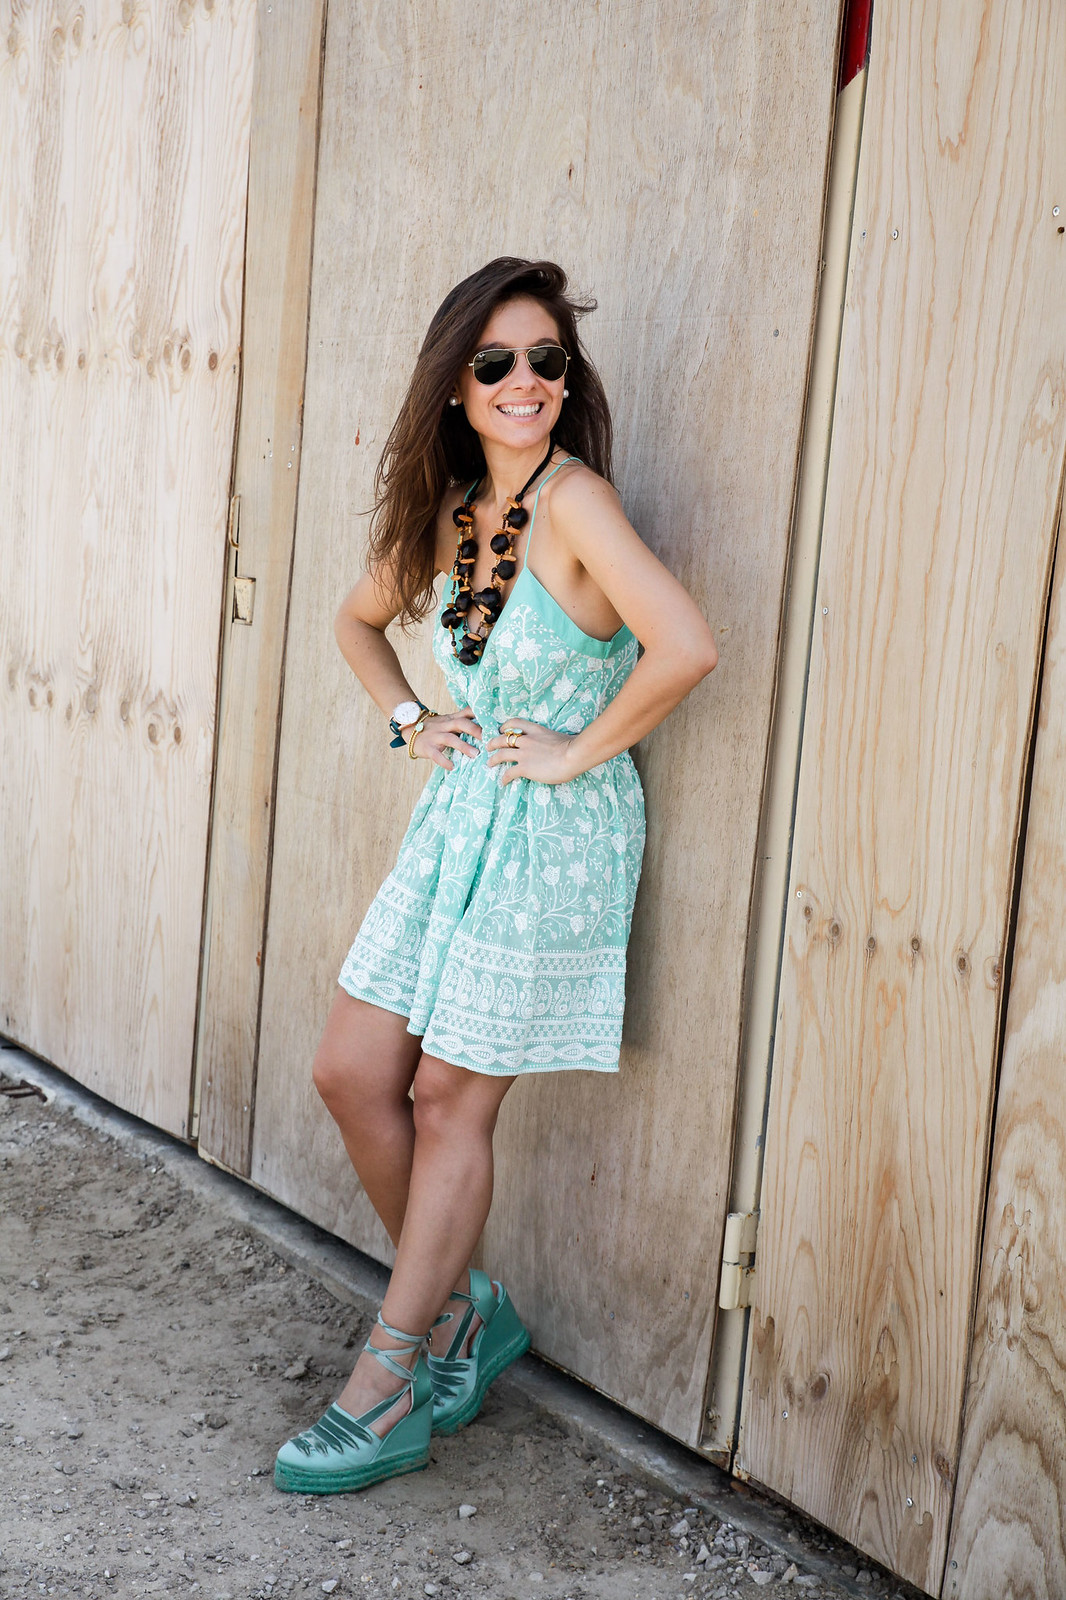 09_turquoise__dress_summer_outfit_miss_june_castañer_cuñas_aguamarina_theguestgirl_influencer_barcelona_laura_santolaria